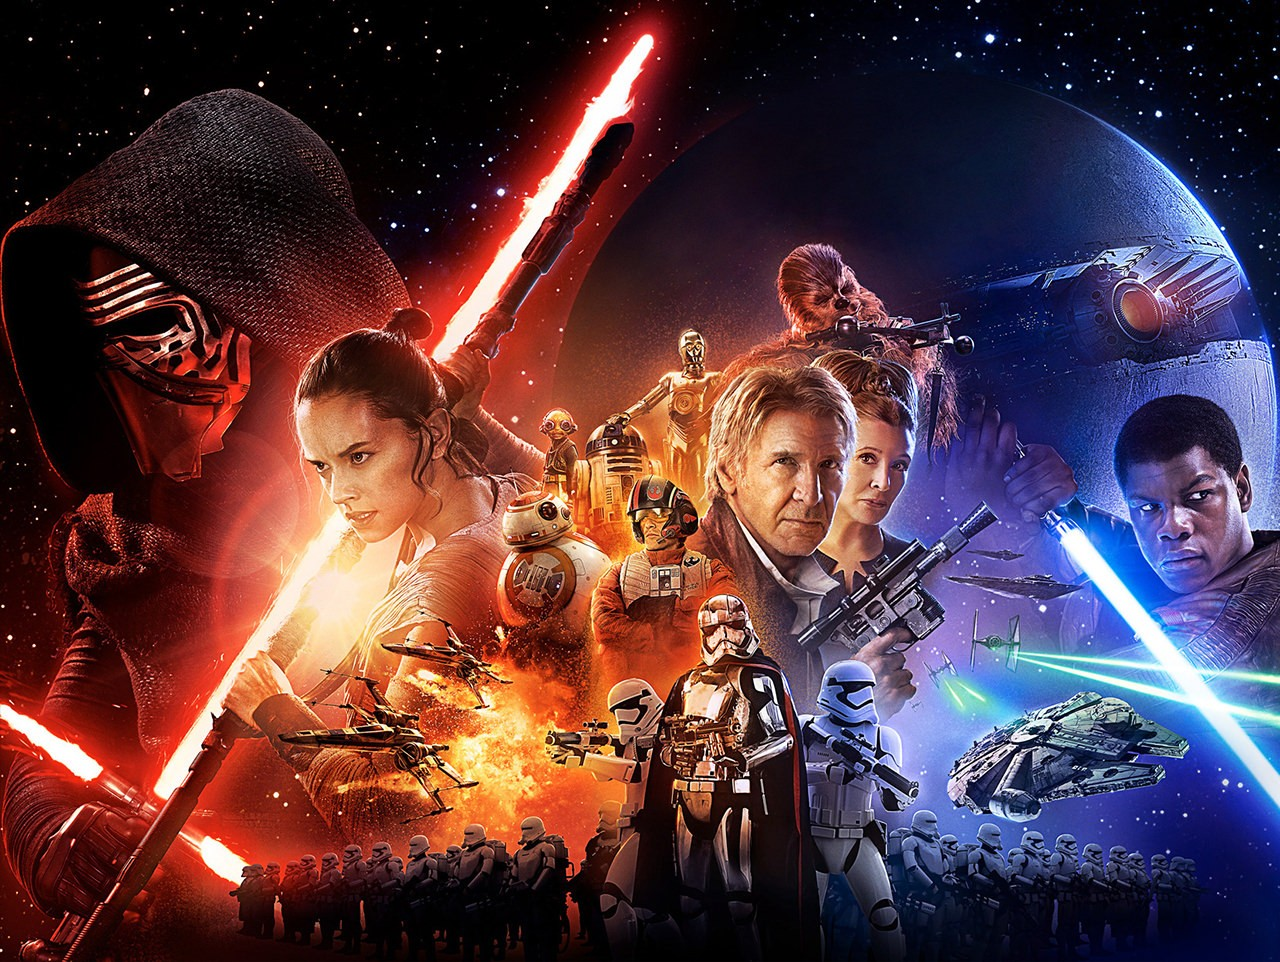 STAR WARS:THE FORCE AWAKENS